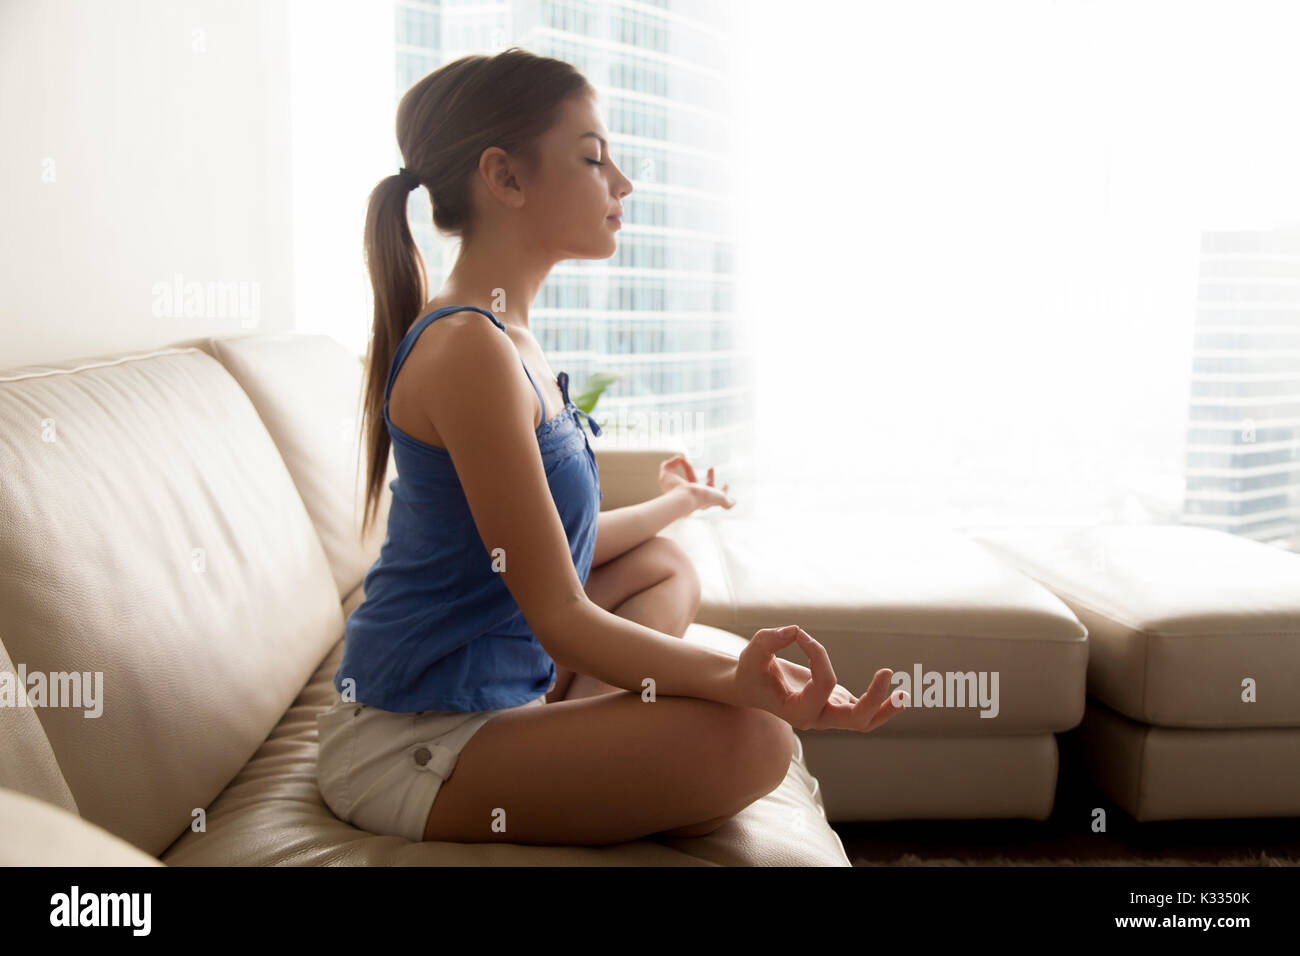 Lady practicing yoga and relaxing at home - Stock Image